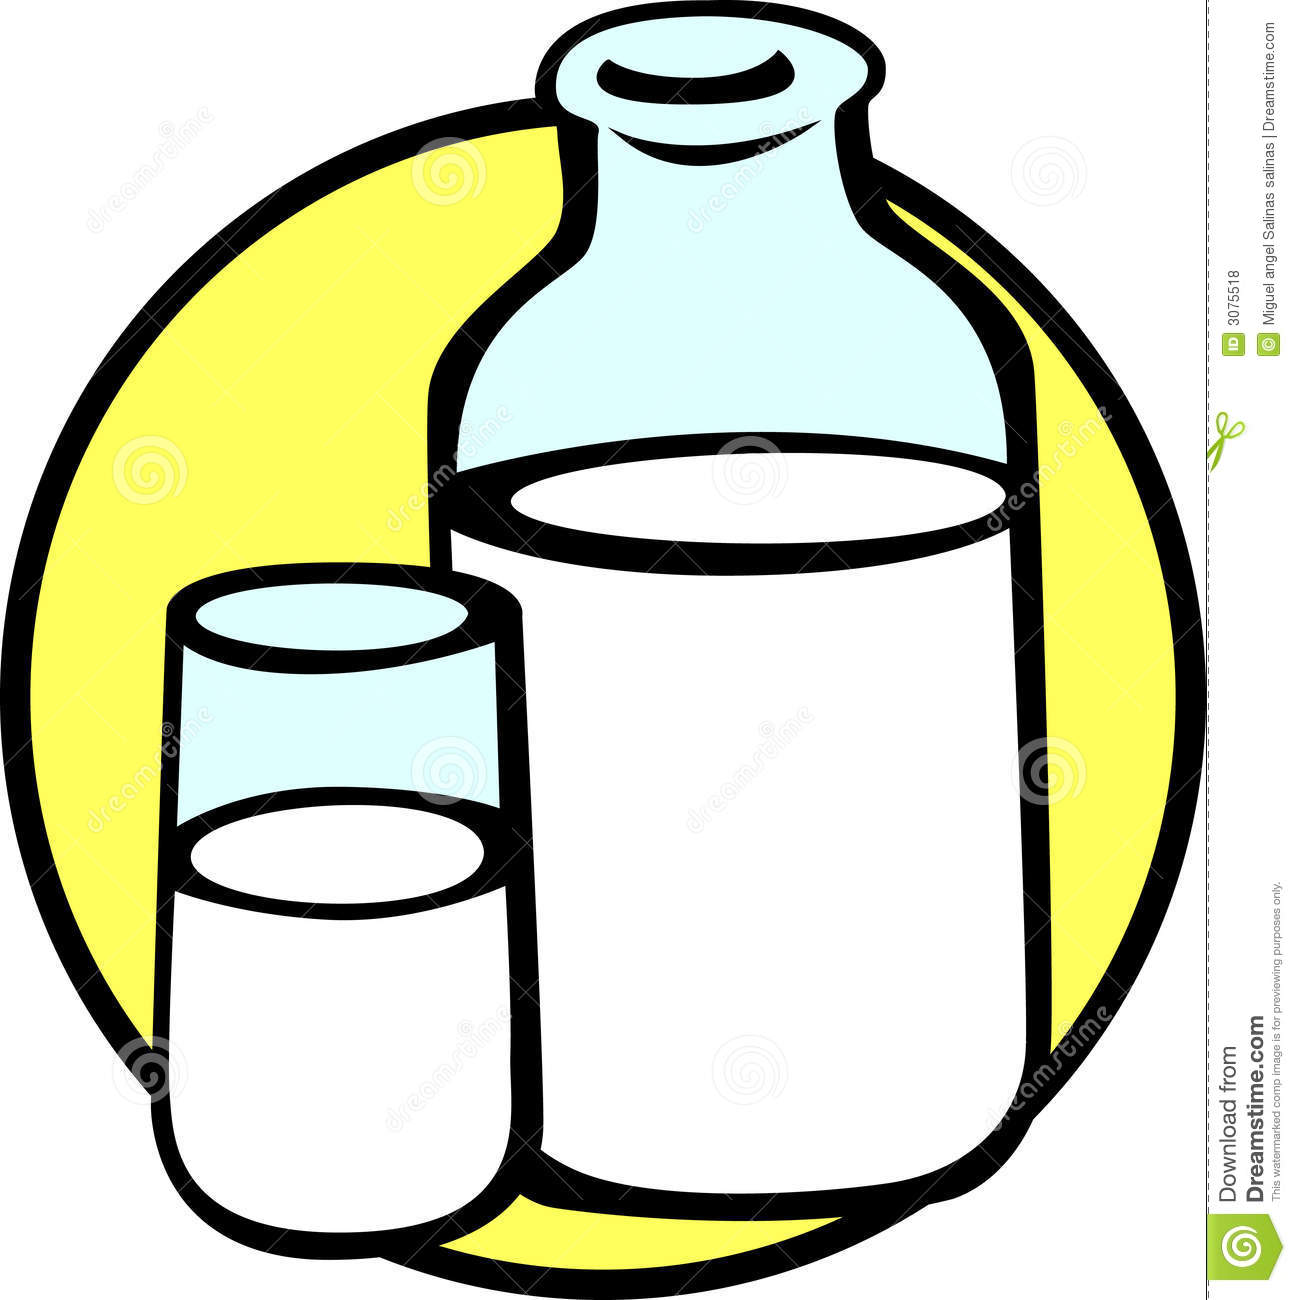 clipart of a glass of milk - photo #14